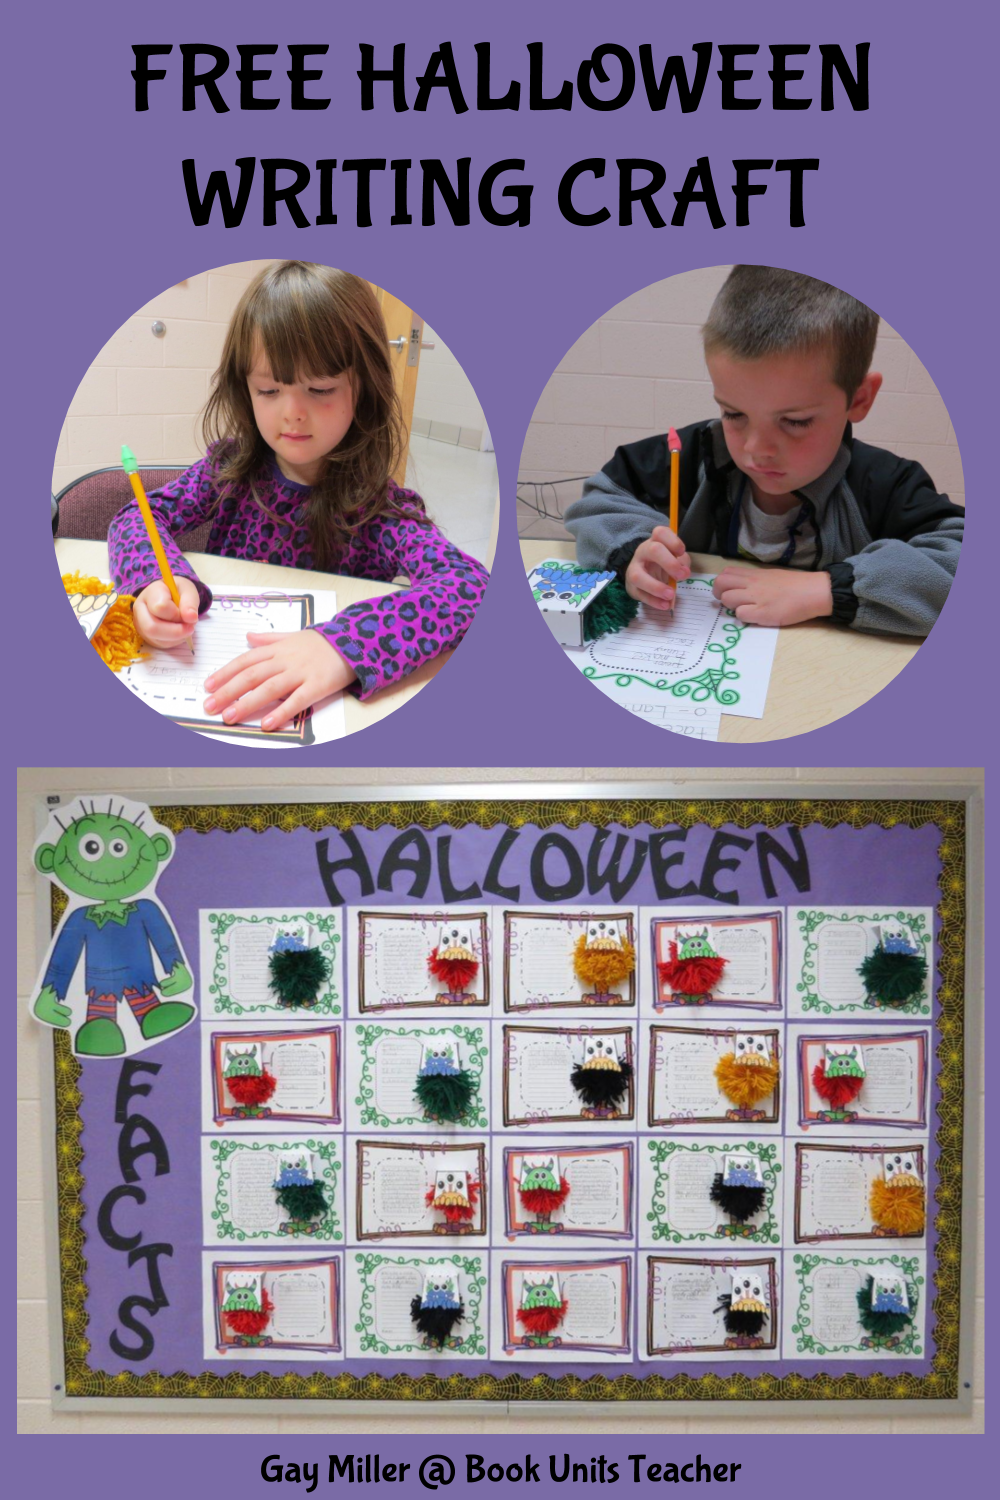 Add a little fun to Halloween with these Ten Interesting Facts. Grab the facts in pdf form making them easy to share for distance learning. Great for upper elementary students including 4th, 5th, and 6th graders.